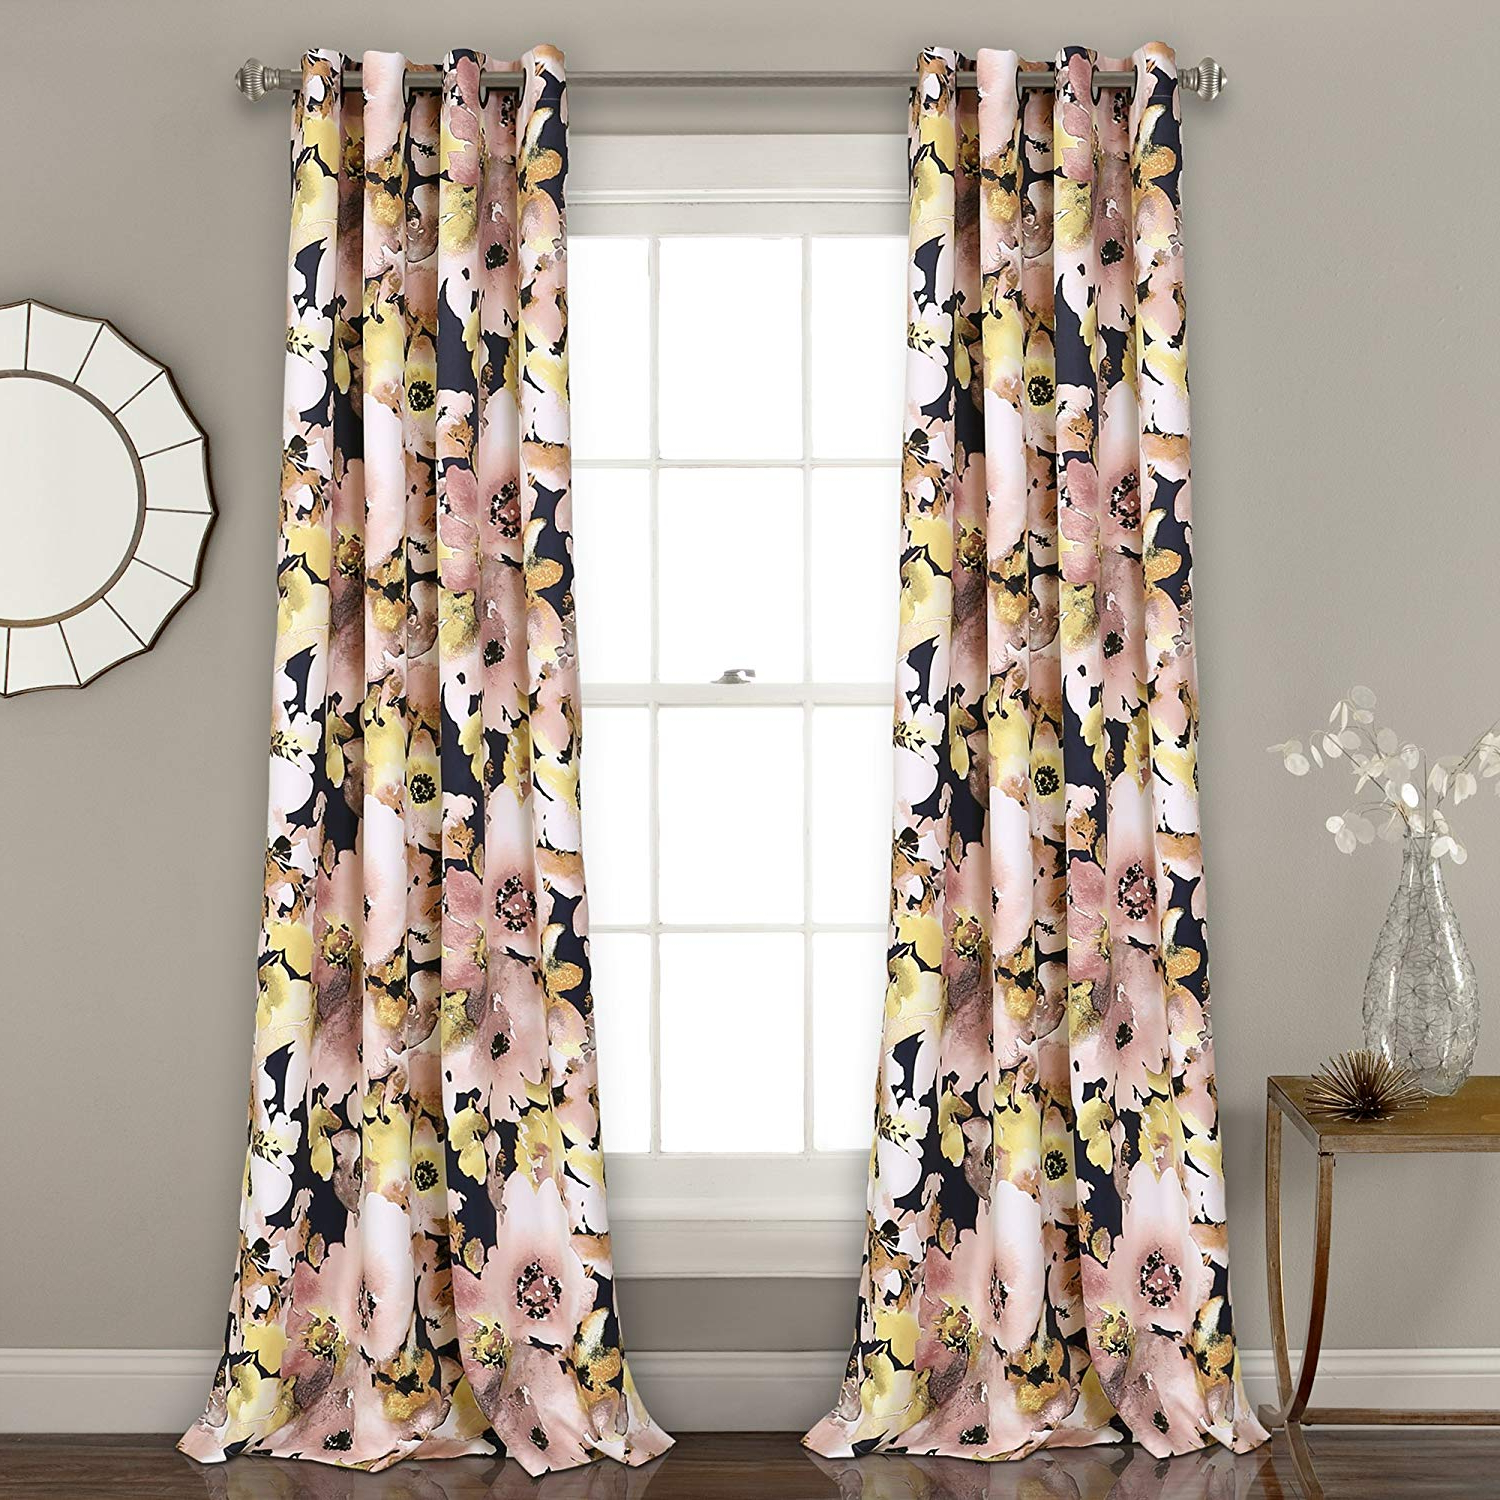 "Floral Pattern Room Darkening Window Curtain Panel Pairs Intended For Best And Newest Lush Decor 16t002398 Floral Watercolor Room Darkening Window Curtain Panel Pair, 84"" X 52"", Navy (View 18 of 20)"